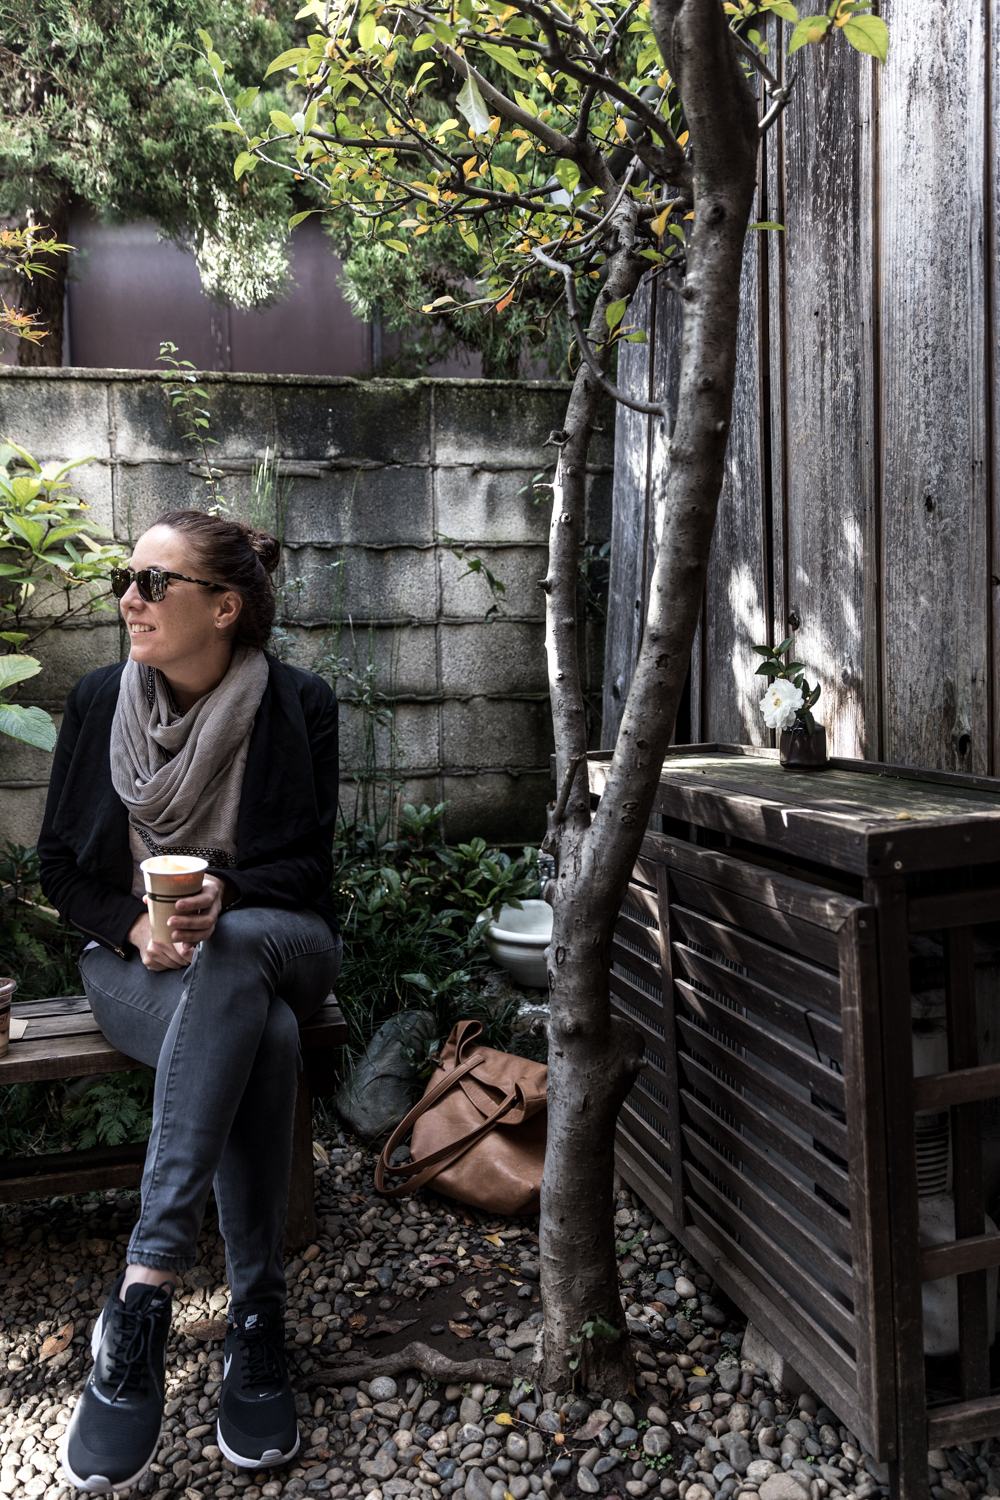 Amy in the courtyard garden at Omotesando Koffee